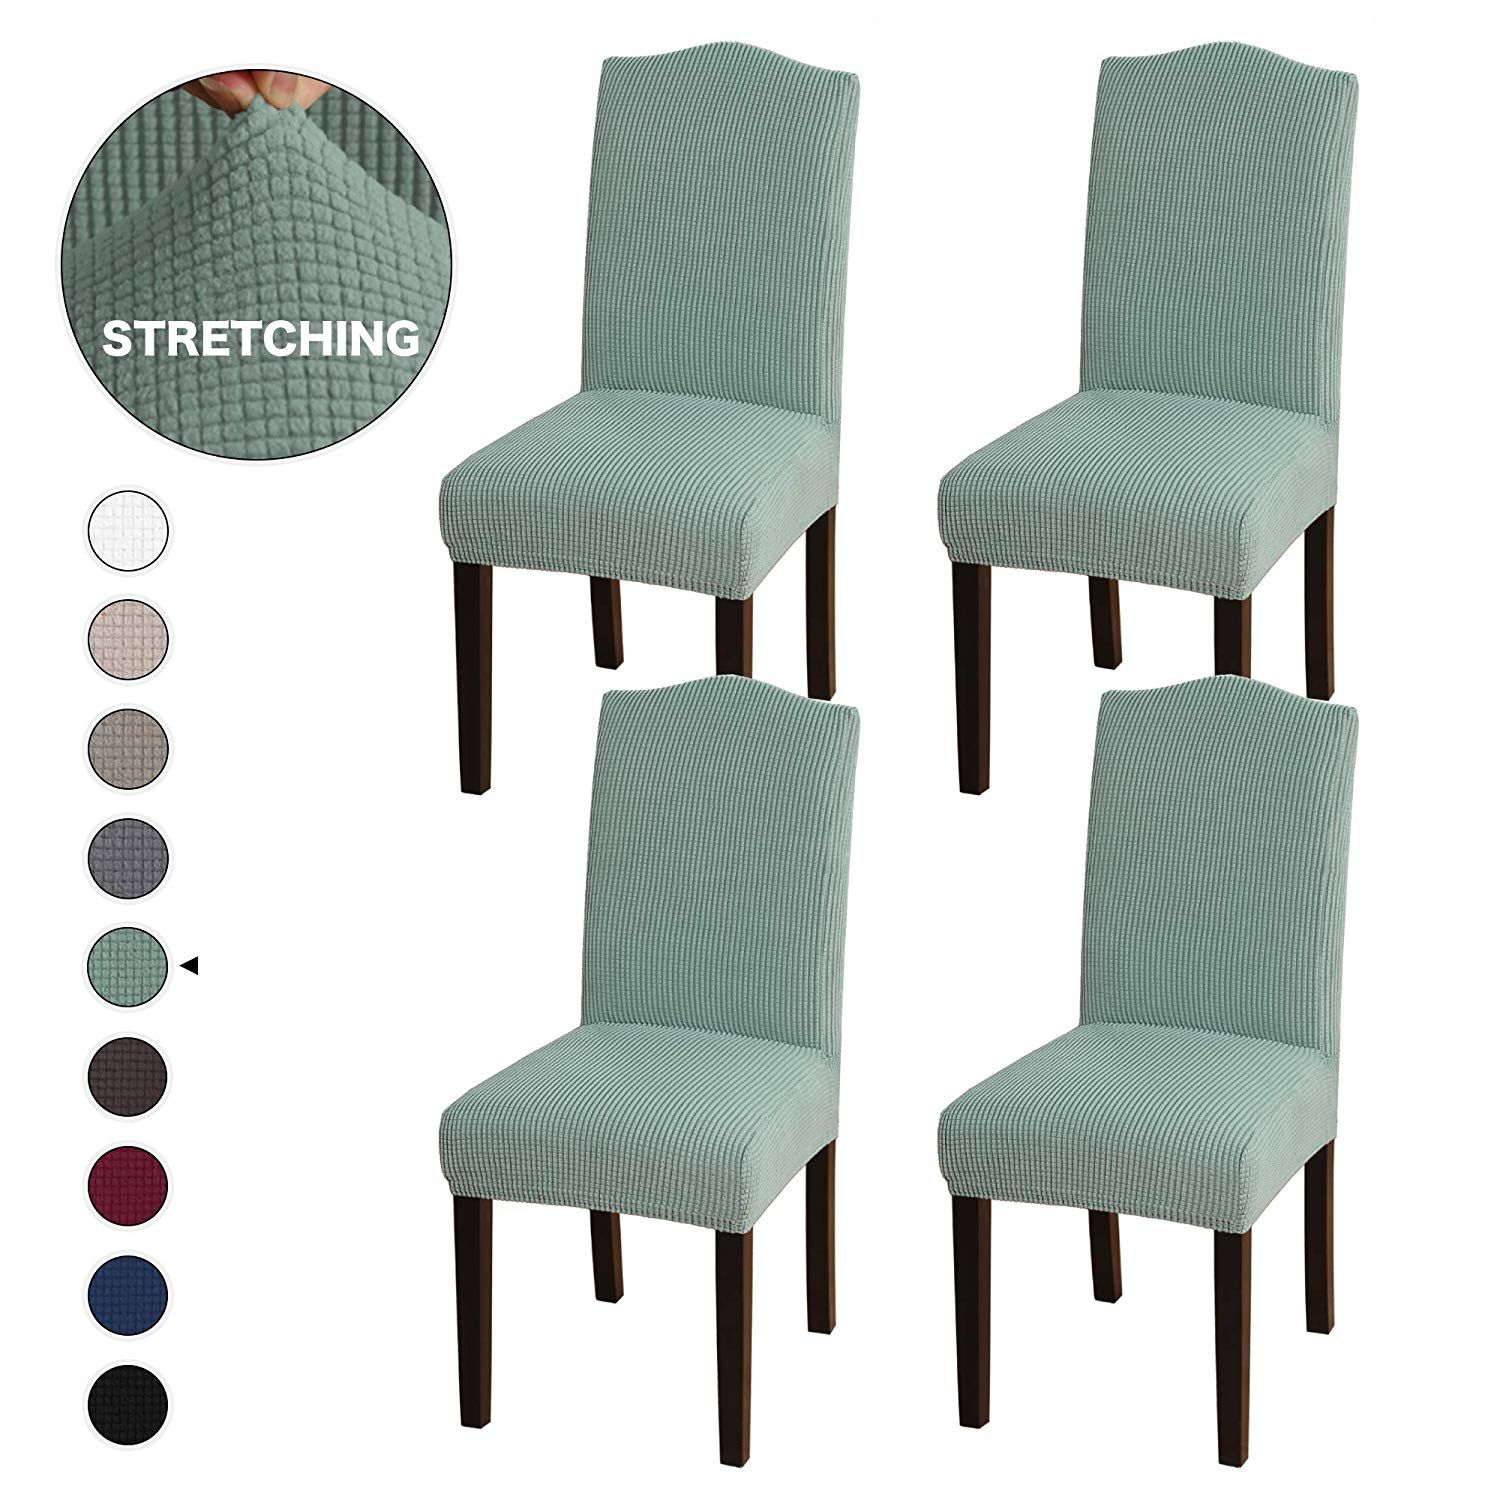 Turquoize Stretch Removable Washable Chair Covers Solid High Dining Room Chai Slipcovers For Chairs Dining Room Chairs Upholstered Dining Room Chair Slipcovers